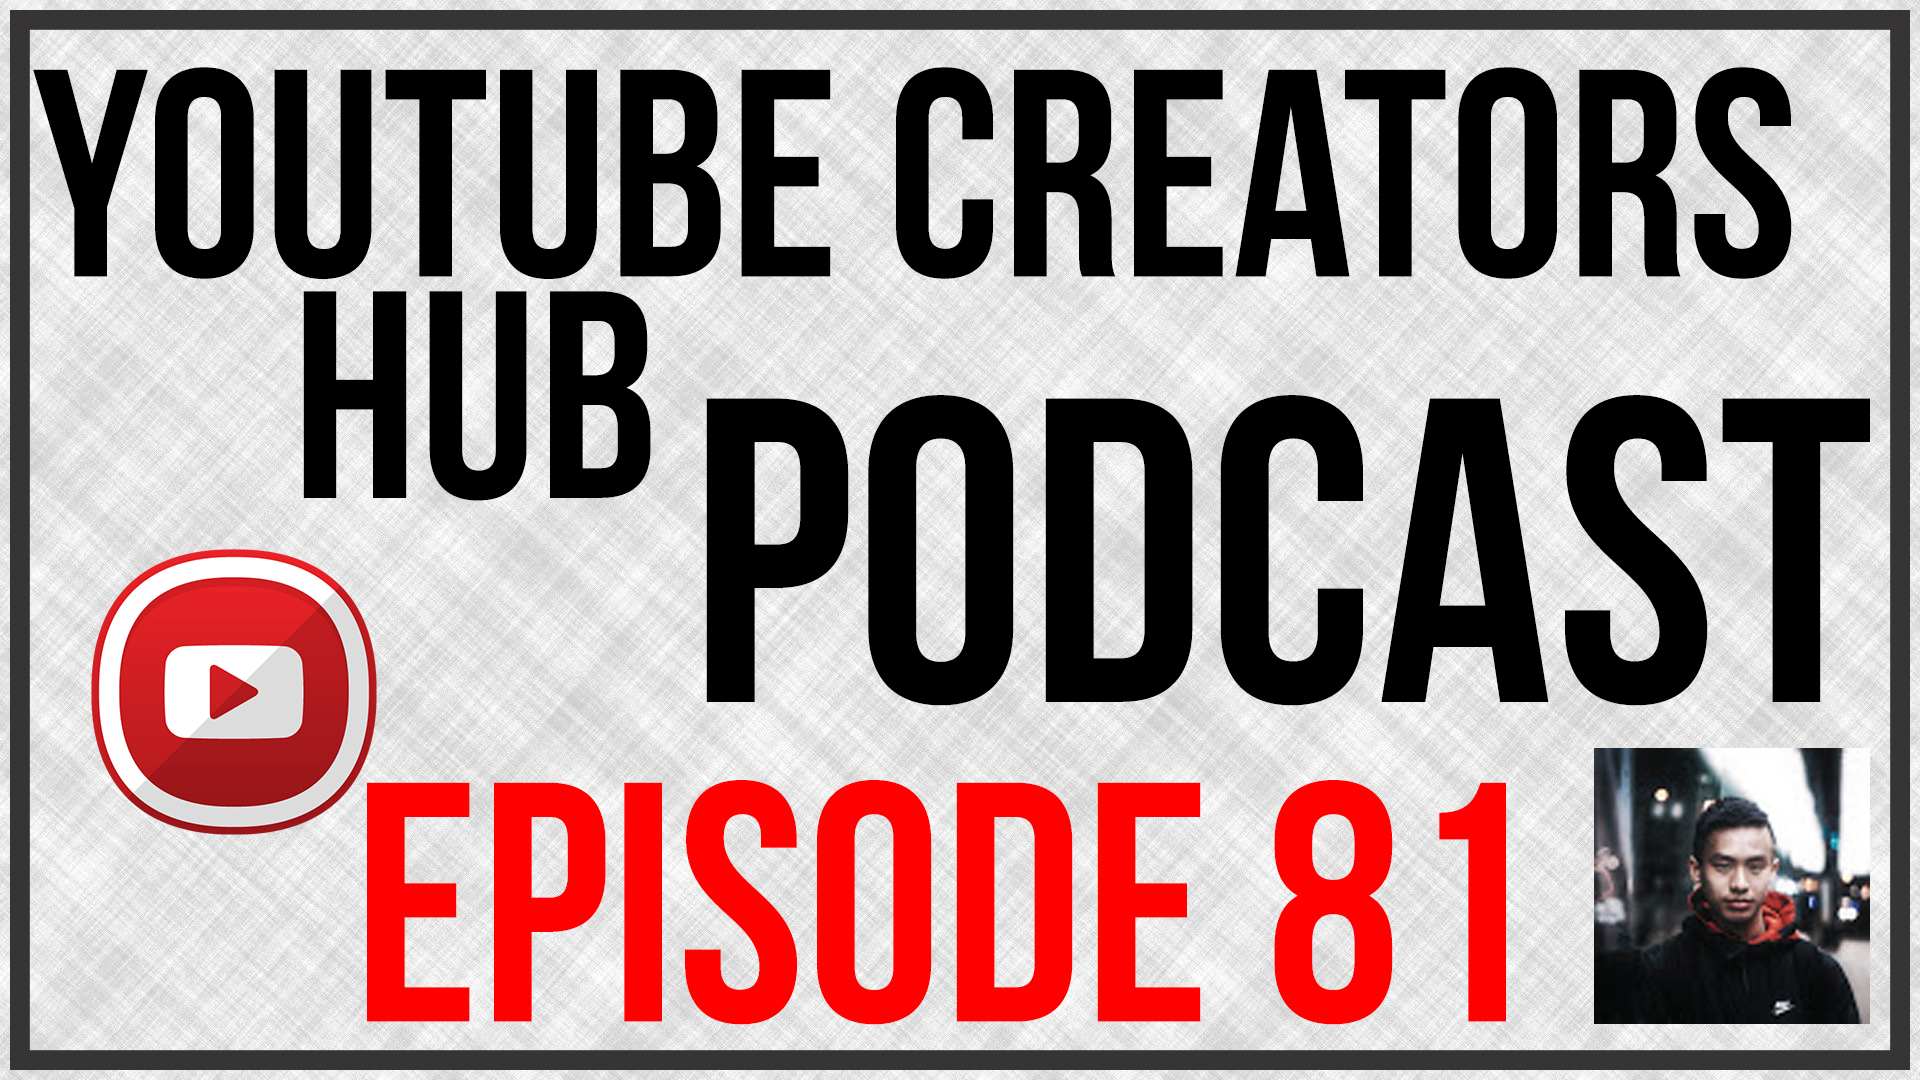 YouTube Creators Hub Podcast Episode 81